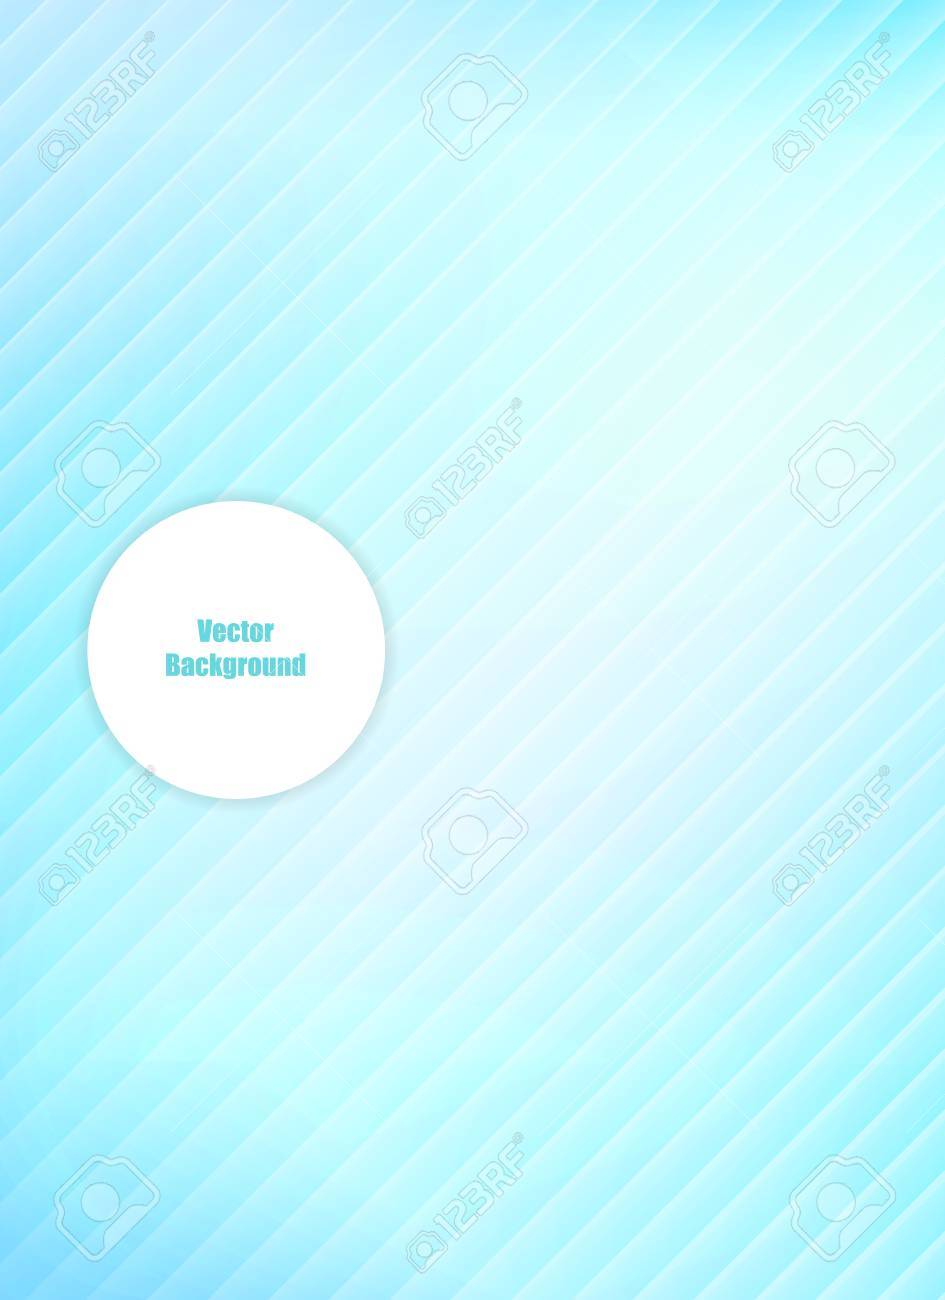 Light Blue Background with Stripes - 57236461